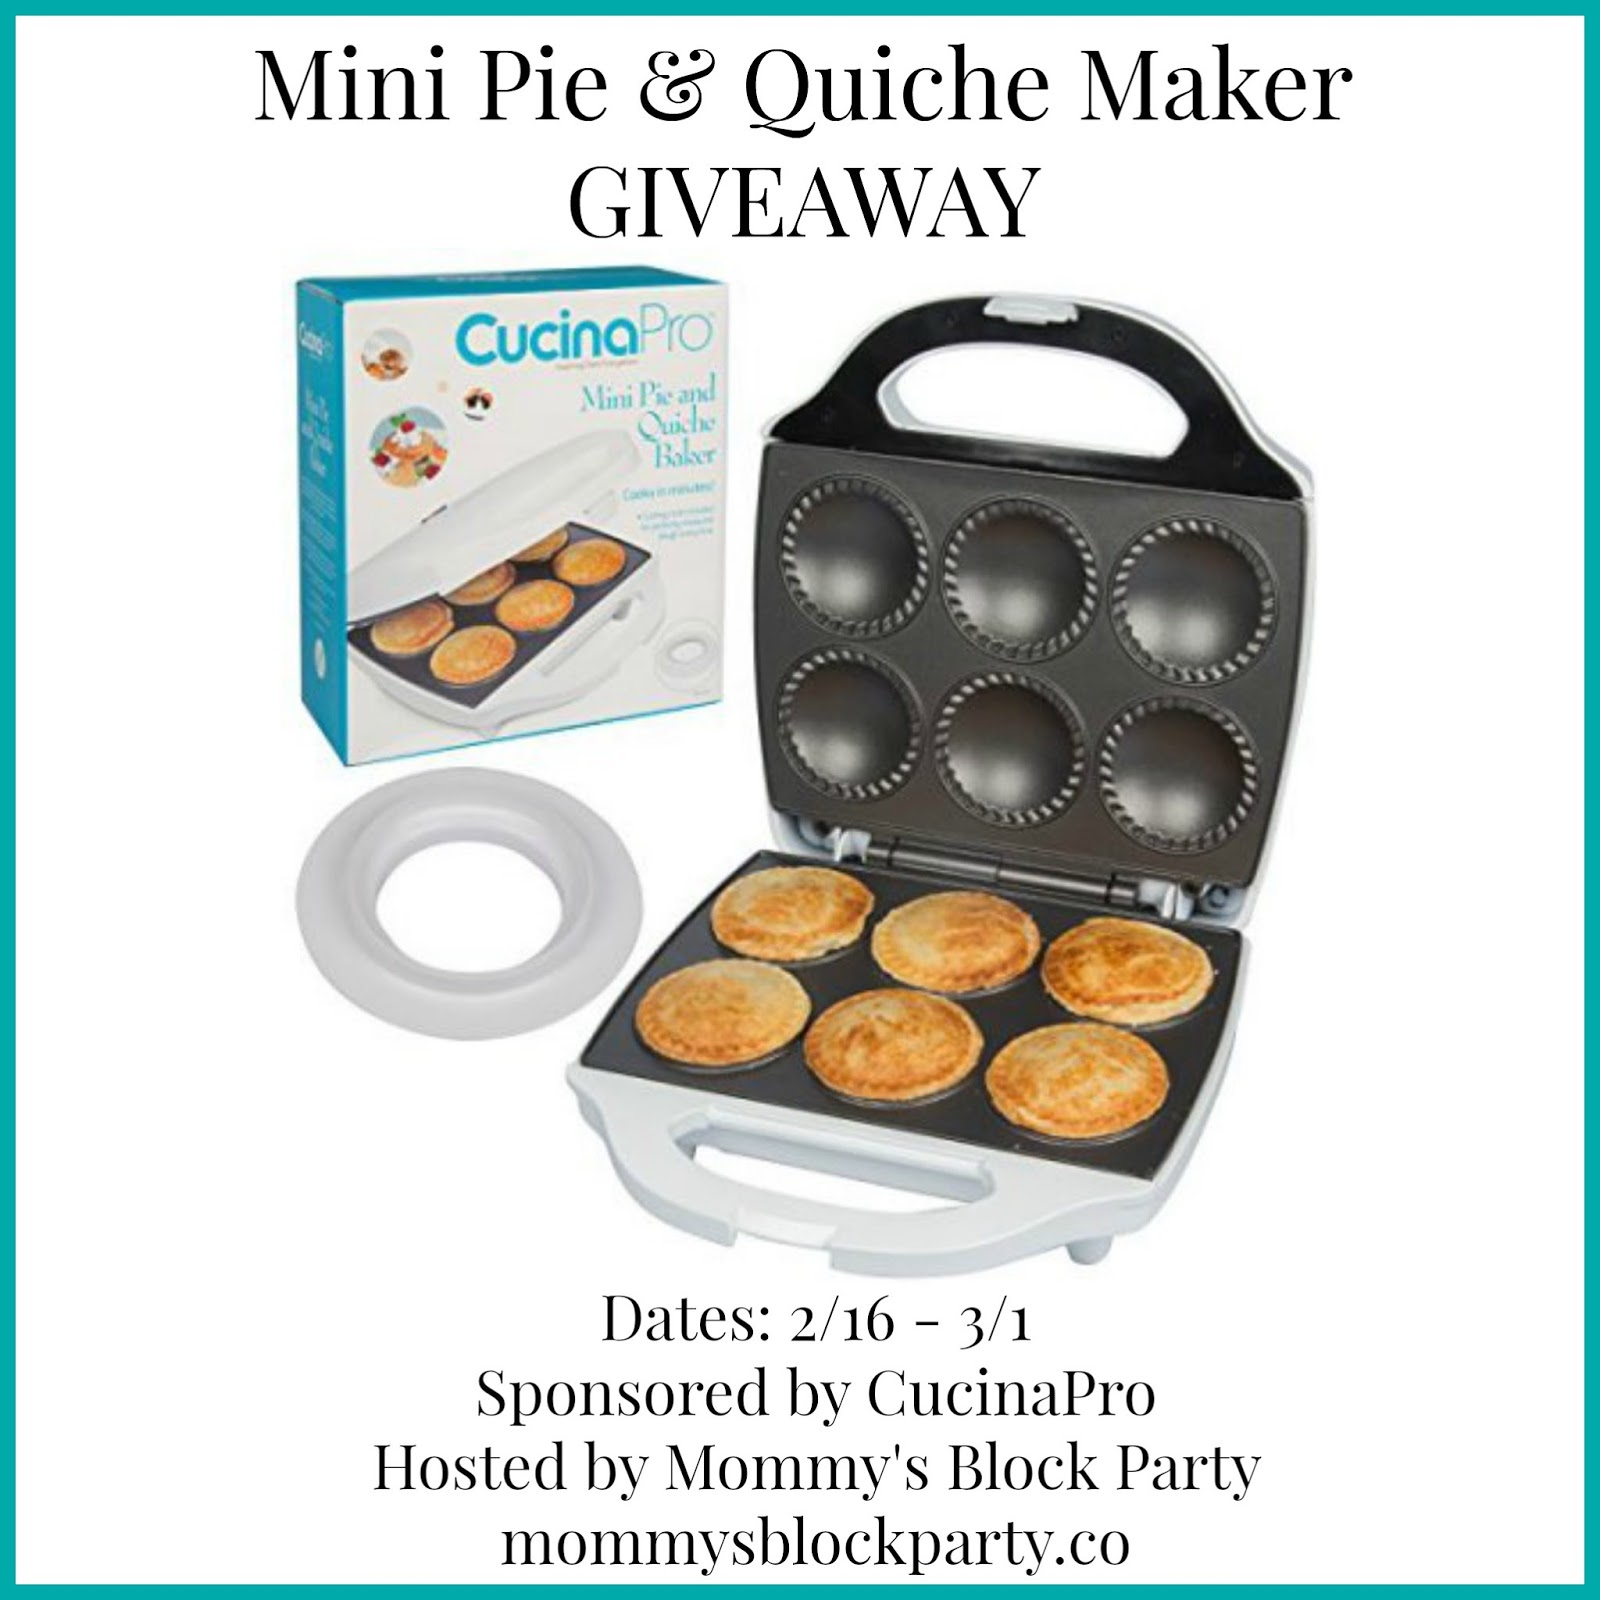 Amazon Cucinapro Rock Your Kitchen Like A Pro With The Mini Pie Quiche Maker From